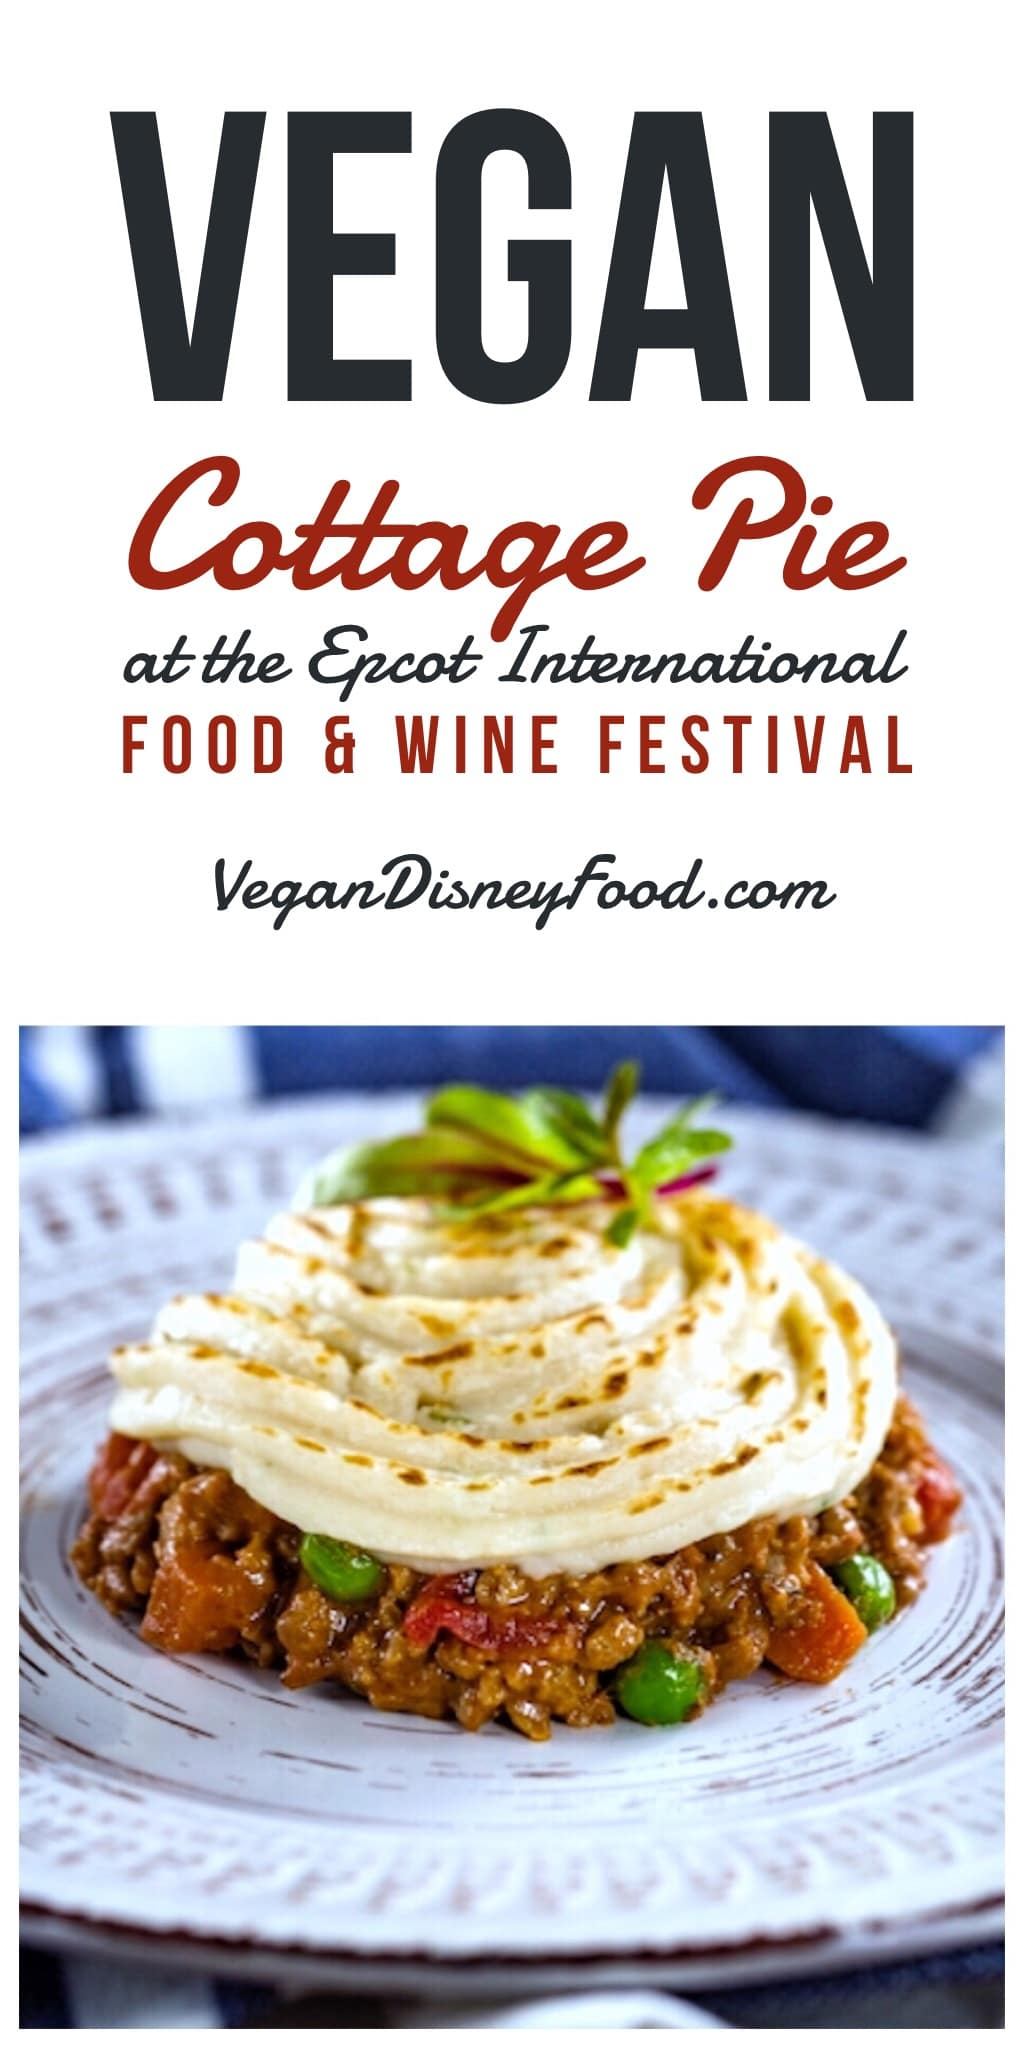 Vegan Options at the Epcot International Food and Wine Festival - Impossible Cottage Pie